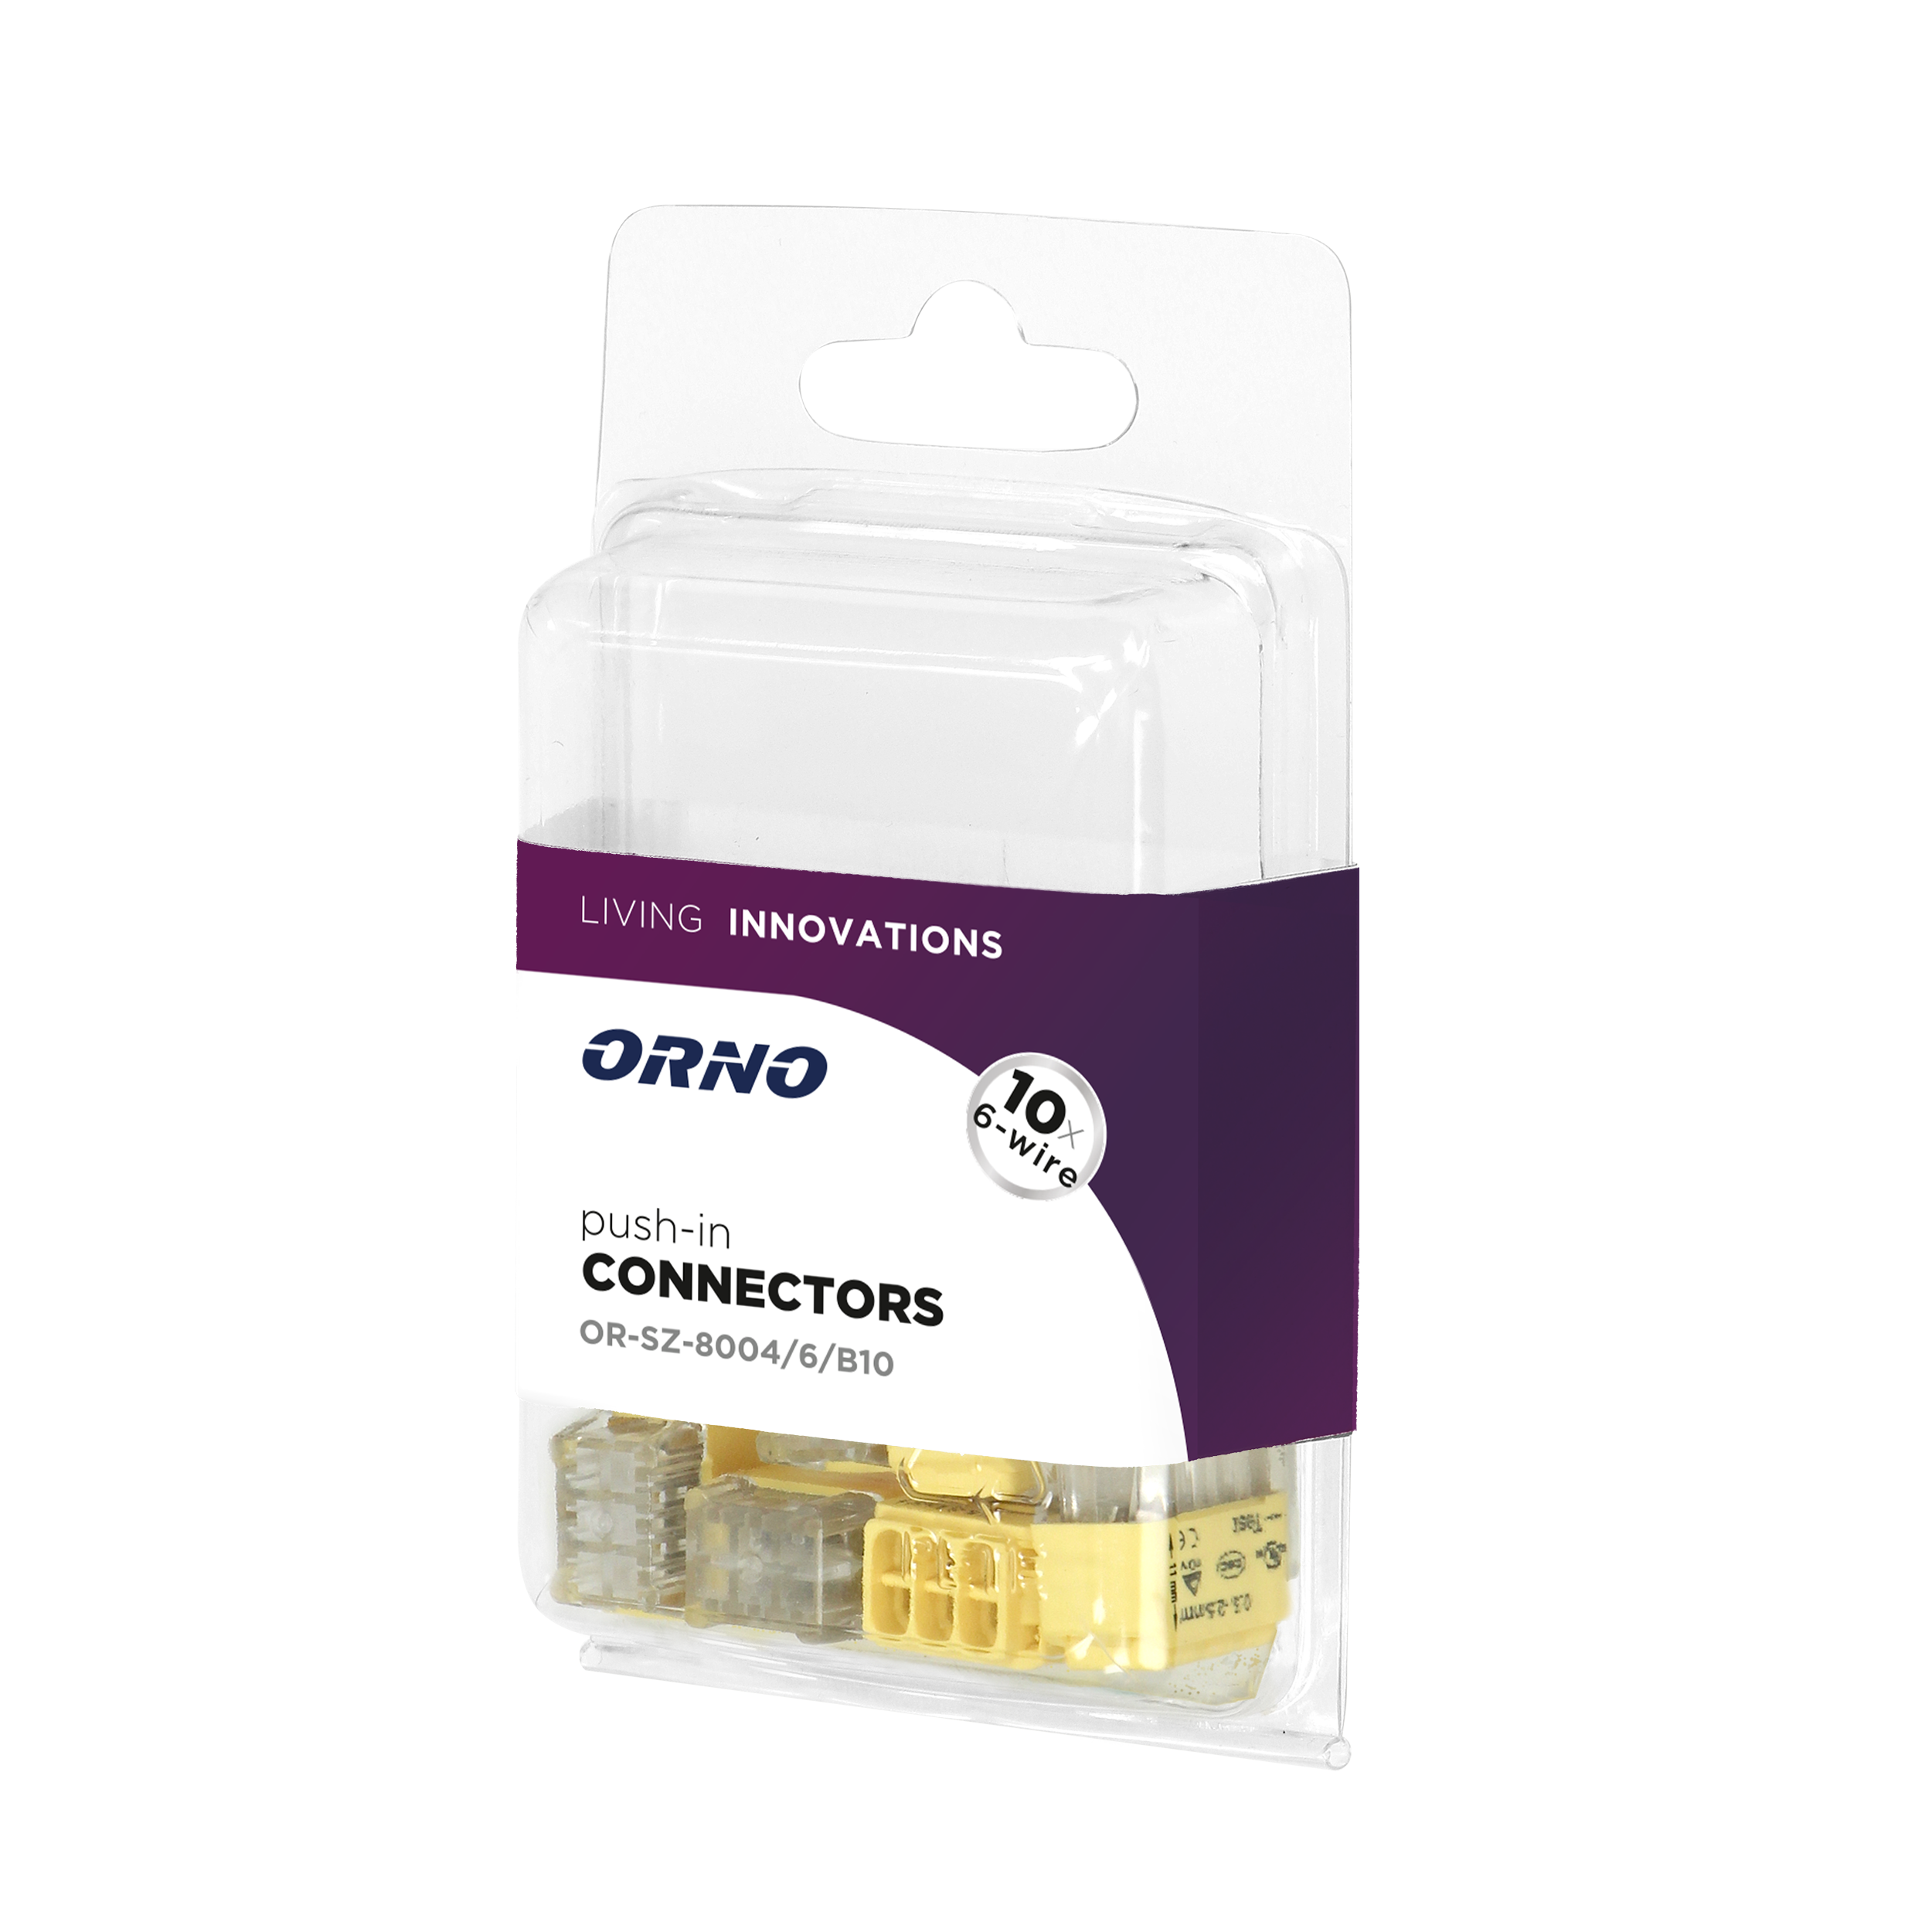 Installation push-in connector for 6 cables (rigid cable 0.75-2.5mm2), IEC 300V/24A, blister pack 10 pcs.